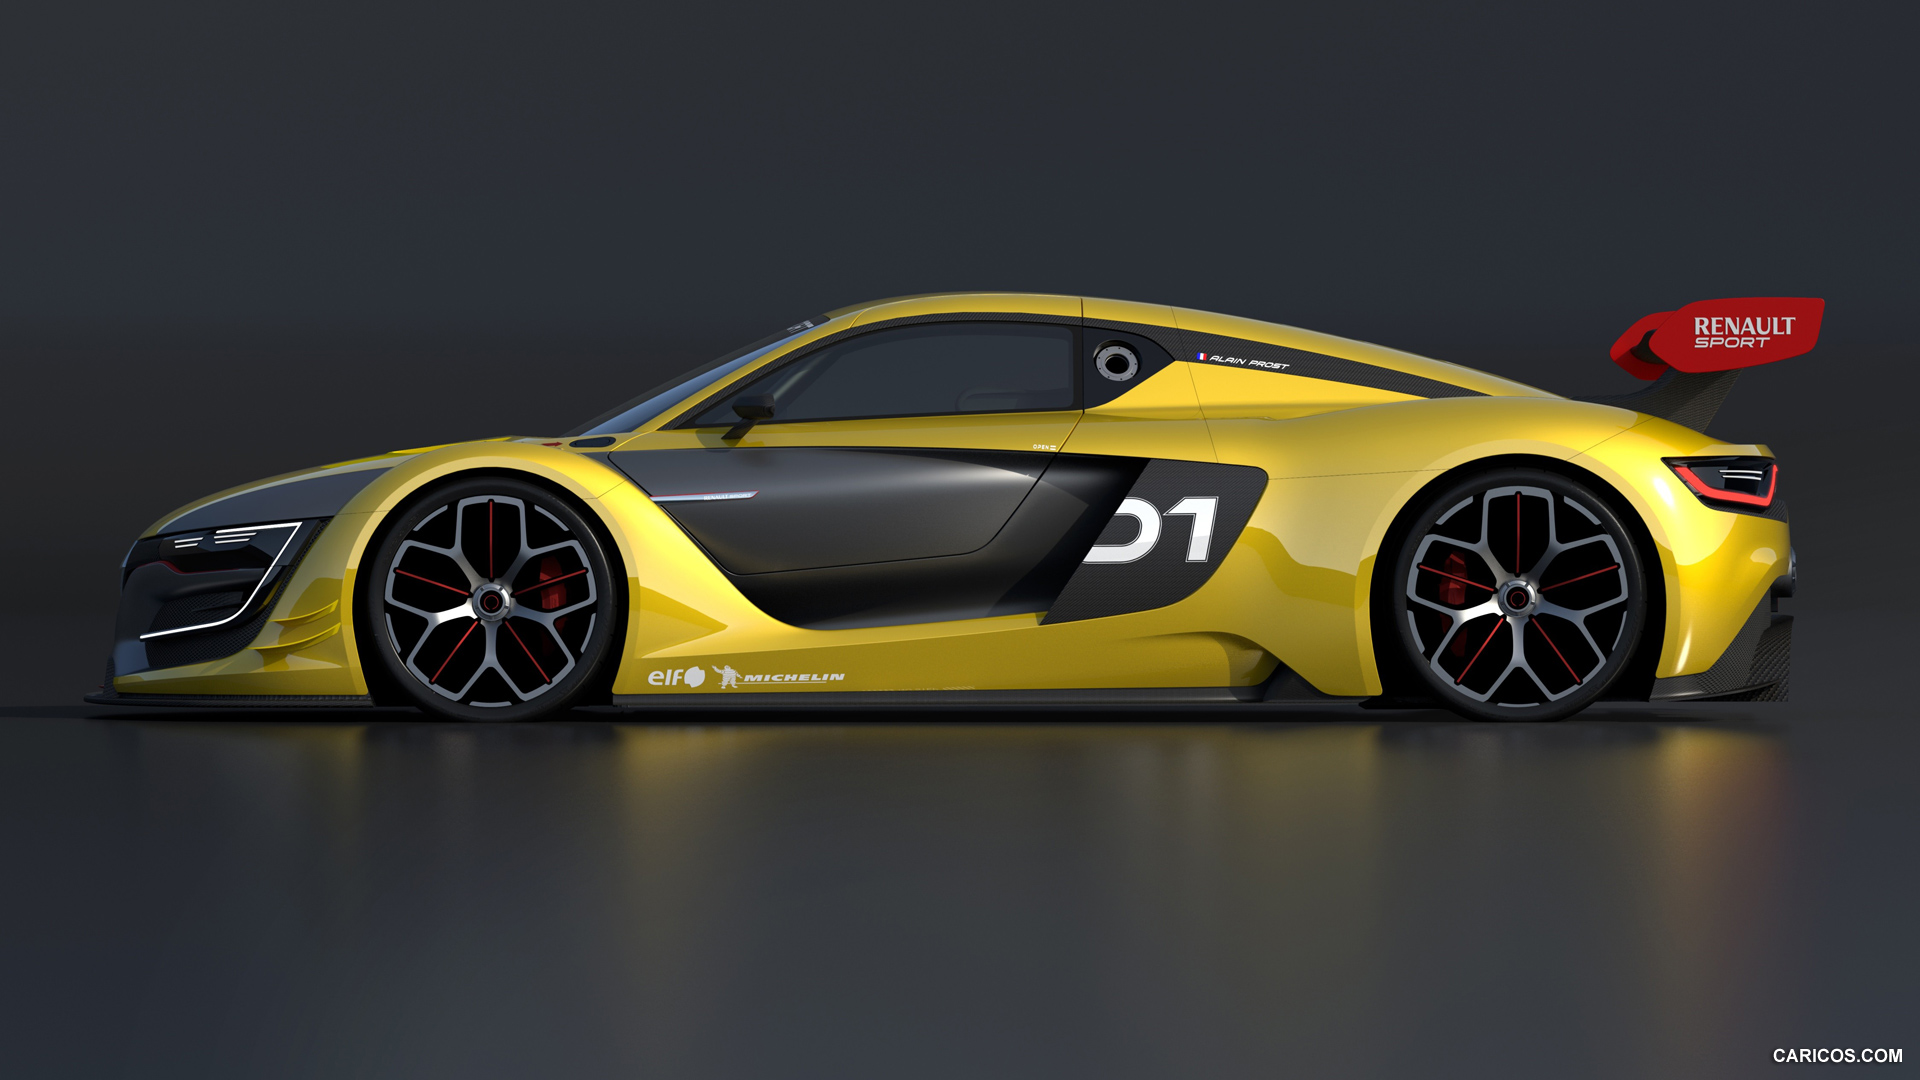 1920x1080 - Renault RS Wallpapers 12